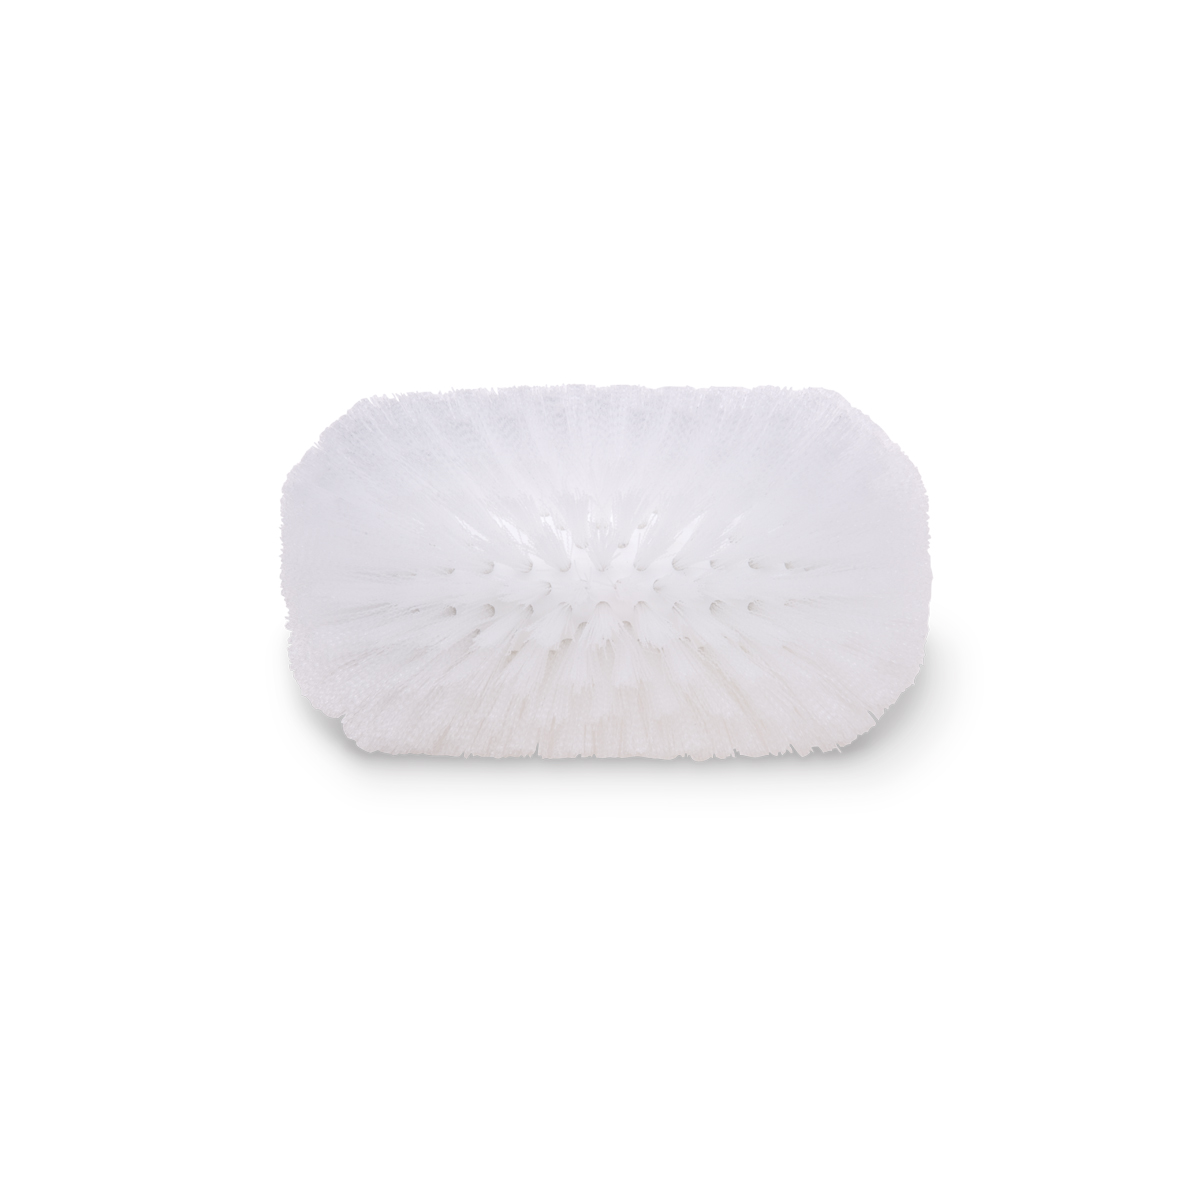 Steriliser Cleaning Brush - Scrub Head Image